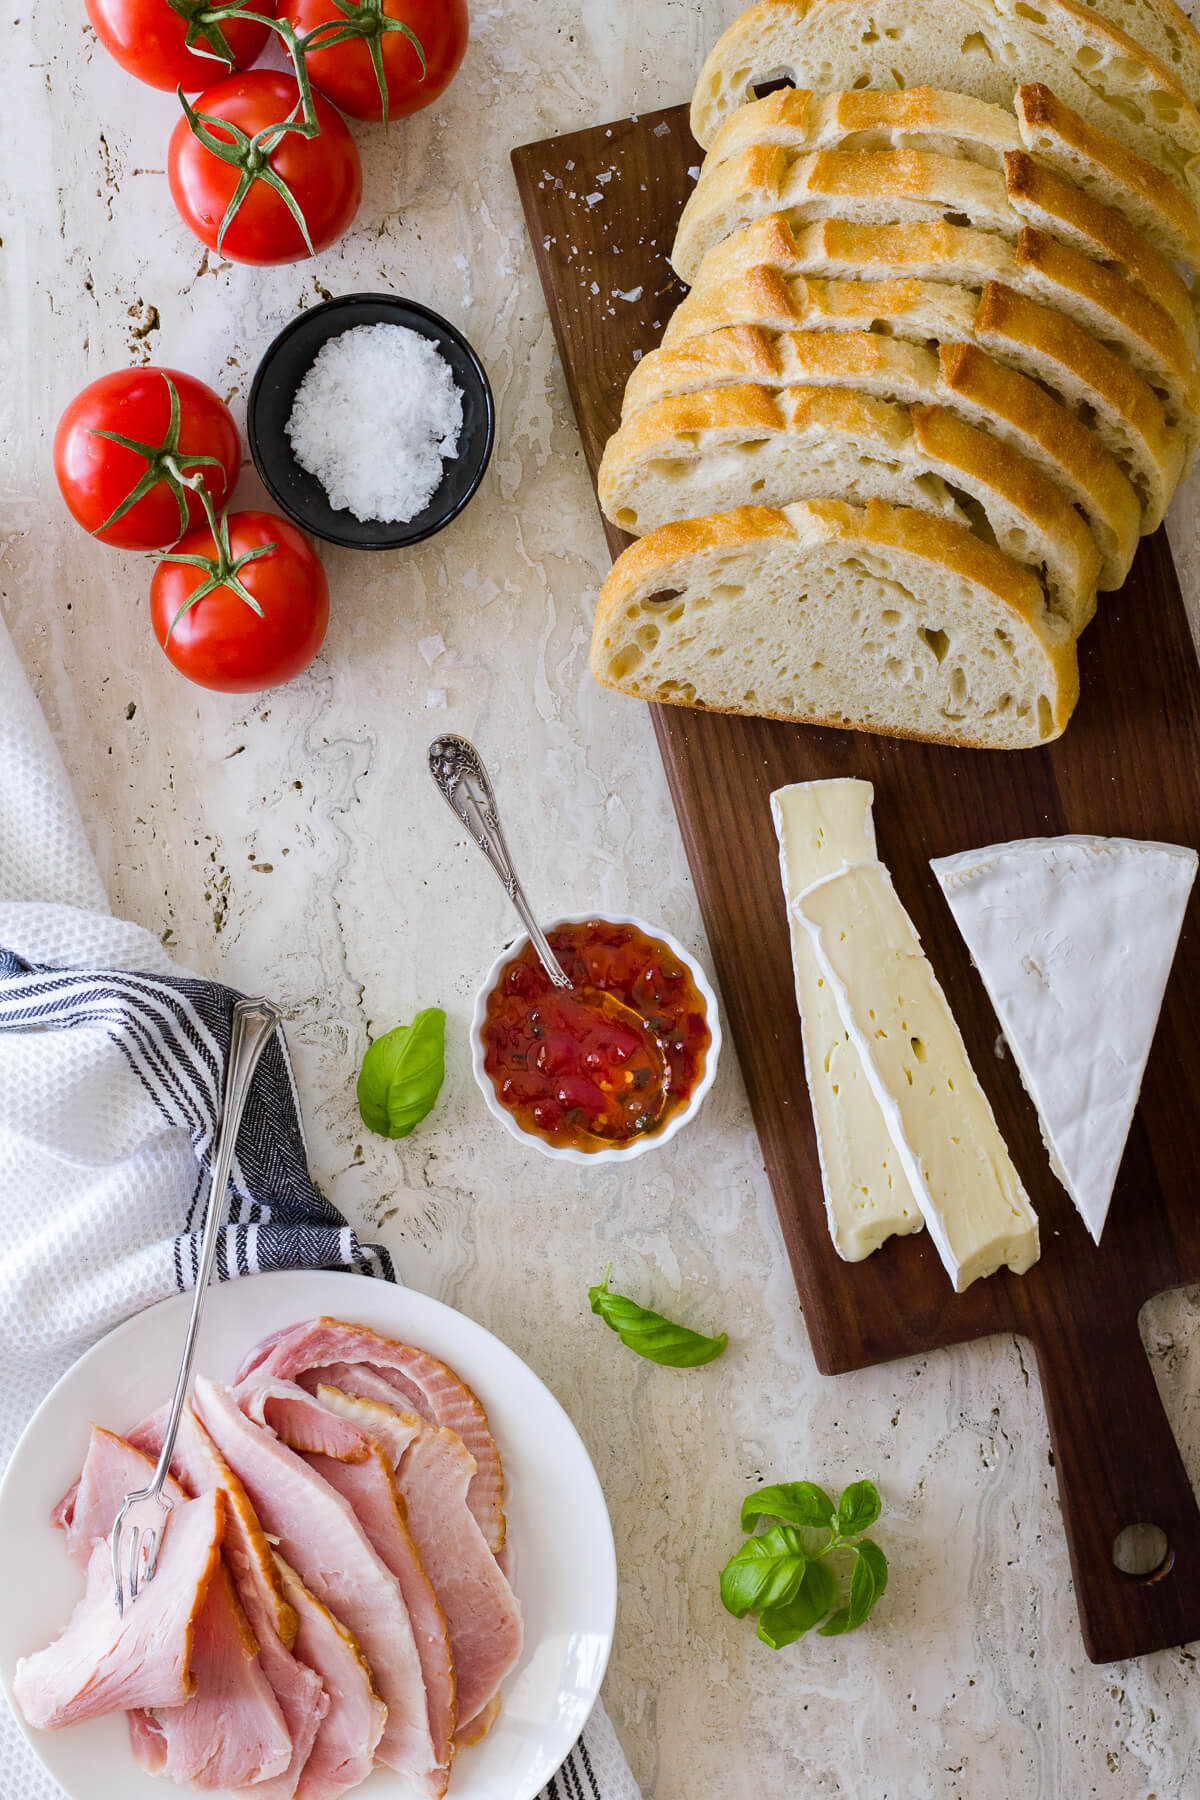 Take your grilled cheese experience to the next level with a cedar plank grilled Hot Brie Melt sandwich. Mouthwatering flavors of spicy pepper jelly, basil, brie cheese, tomatoes, and ham are the perfect combination! Recipe at www.designsofanykind.com